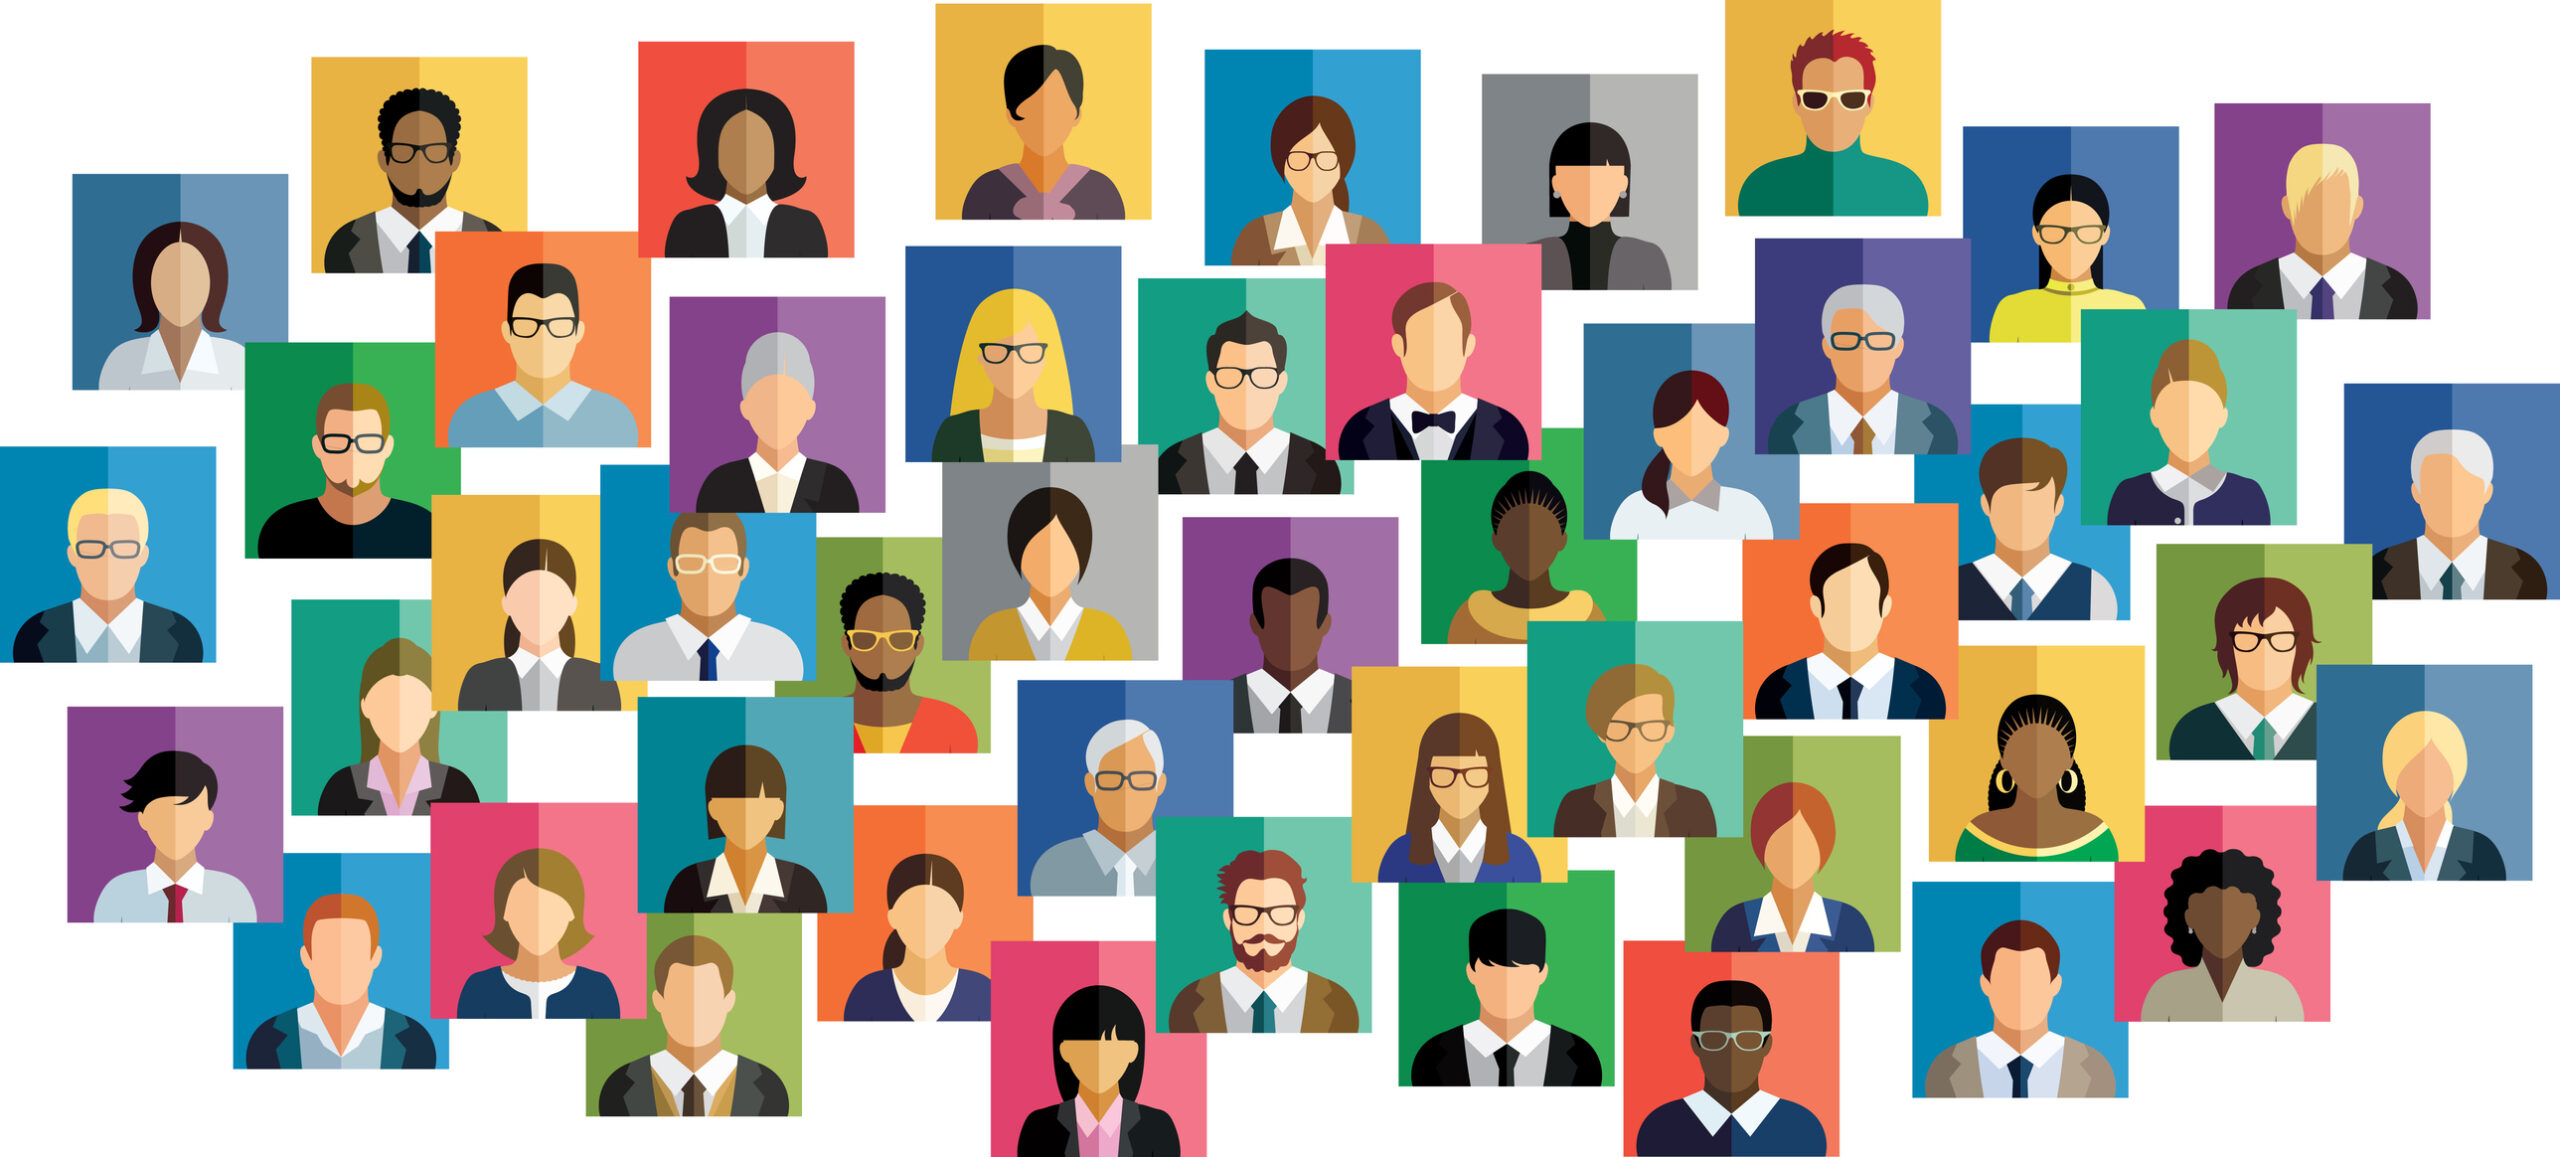 Significant diversity gaps exist at senior levels of accounting profession, study shows